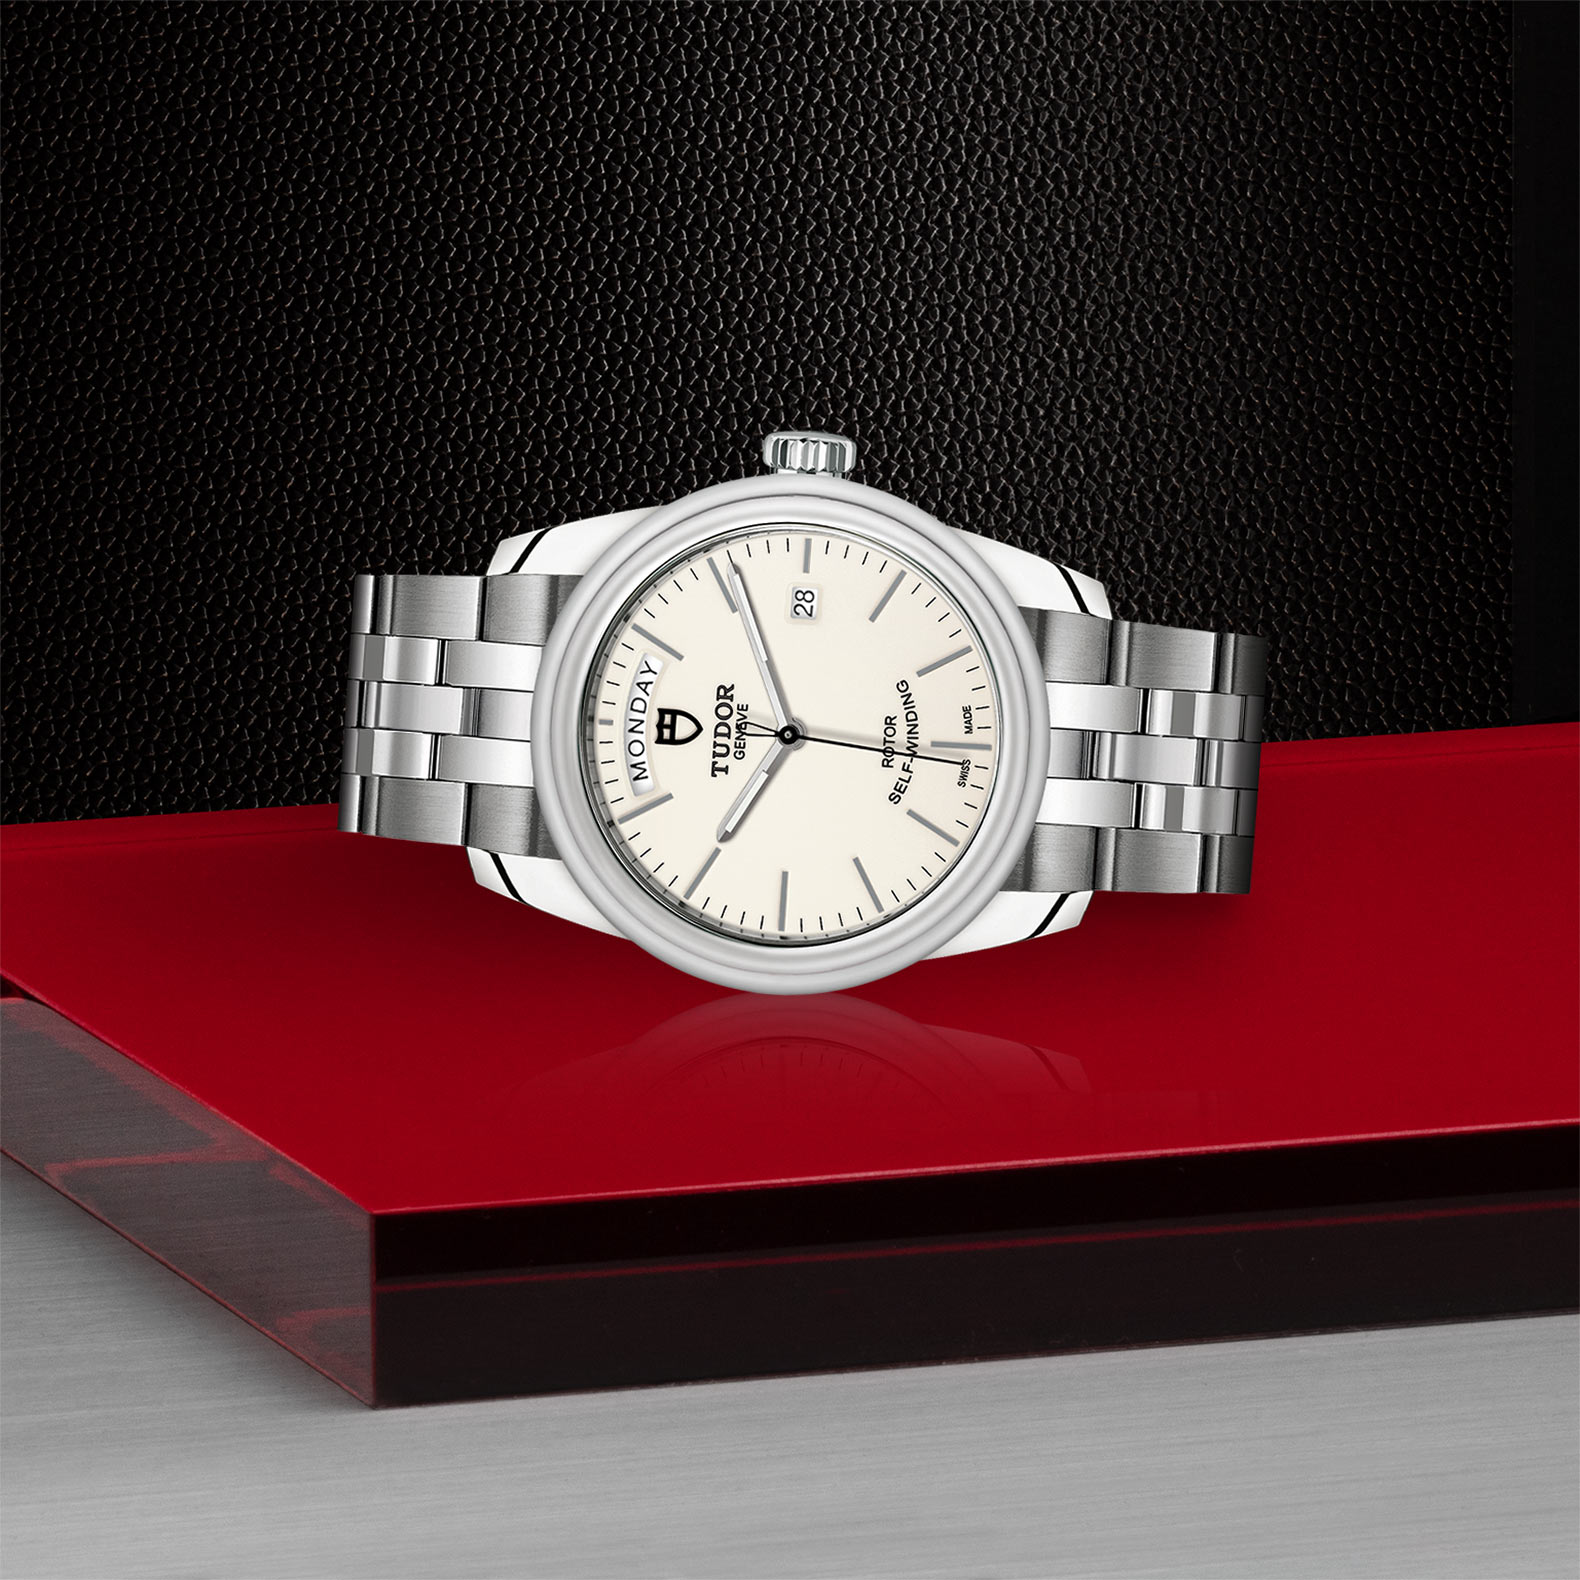 TUDOR Glamour Date+Day - M56000-0181